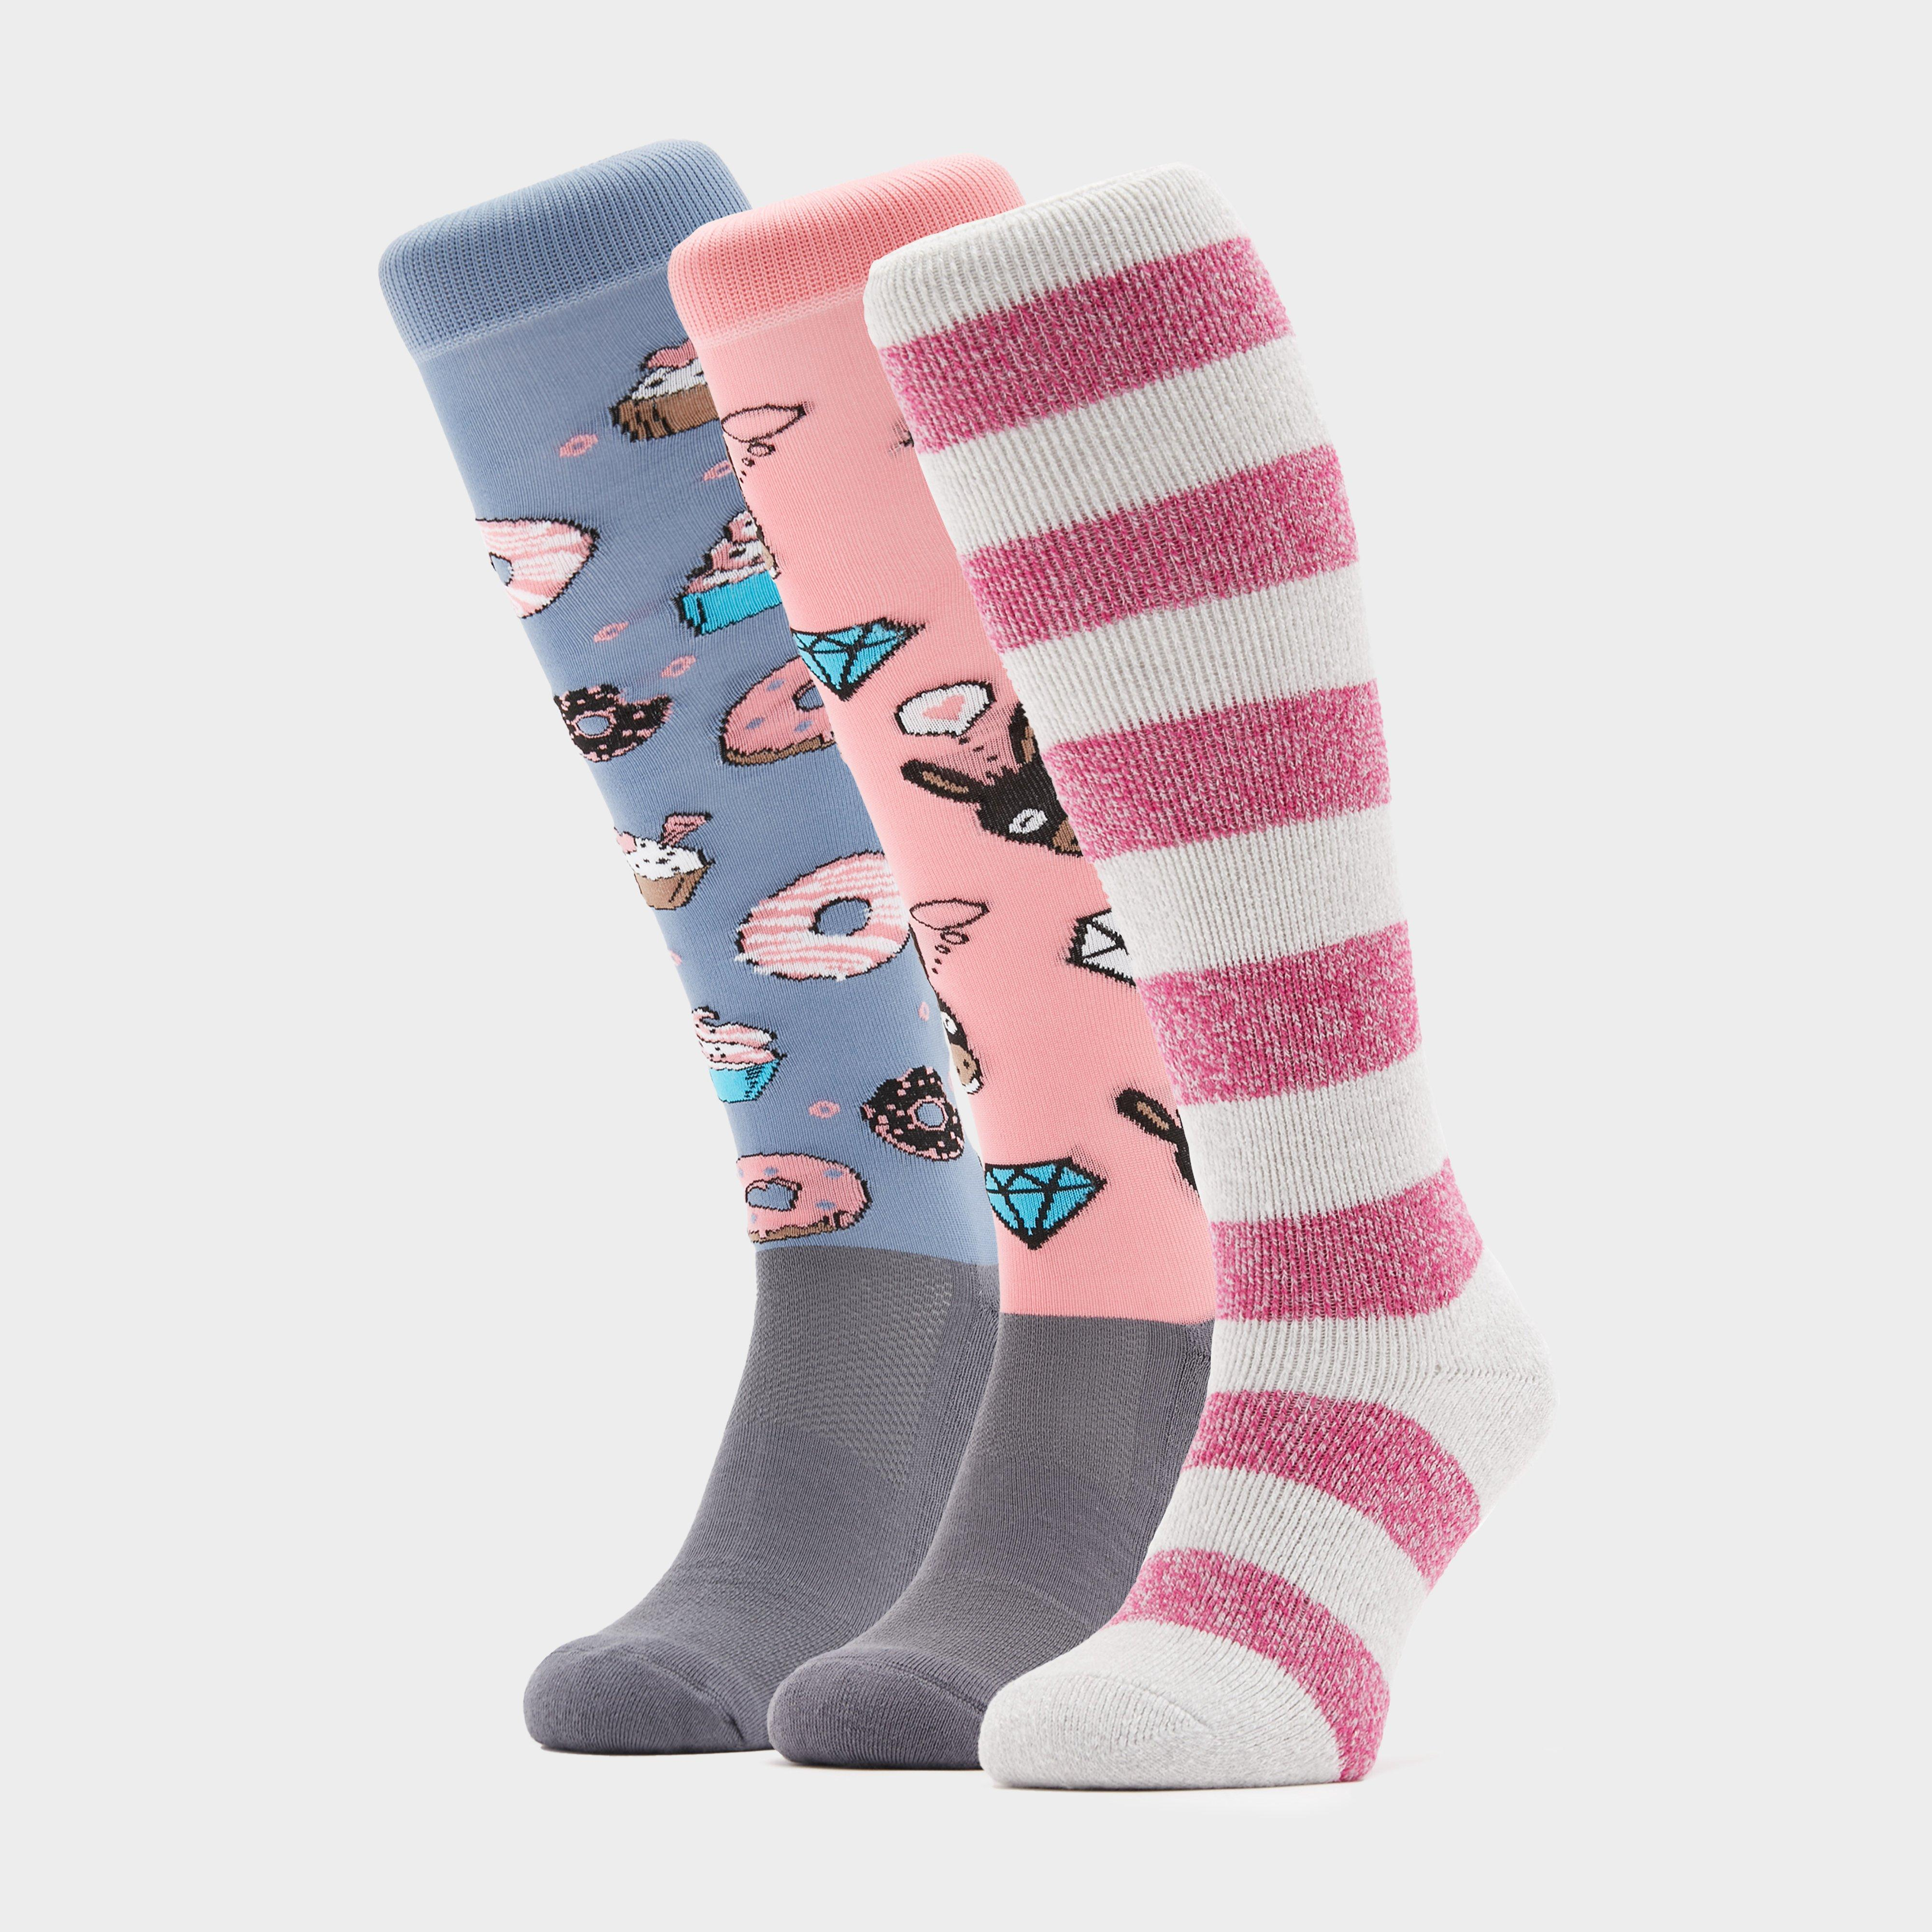 Image of Comodo Adults Novelty Fun Socks Donkey Donut - Pink/Brown, Pink/BROWN